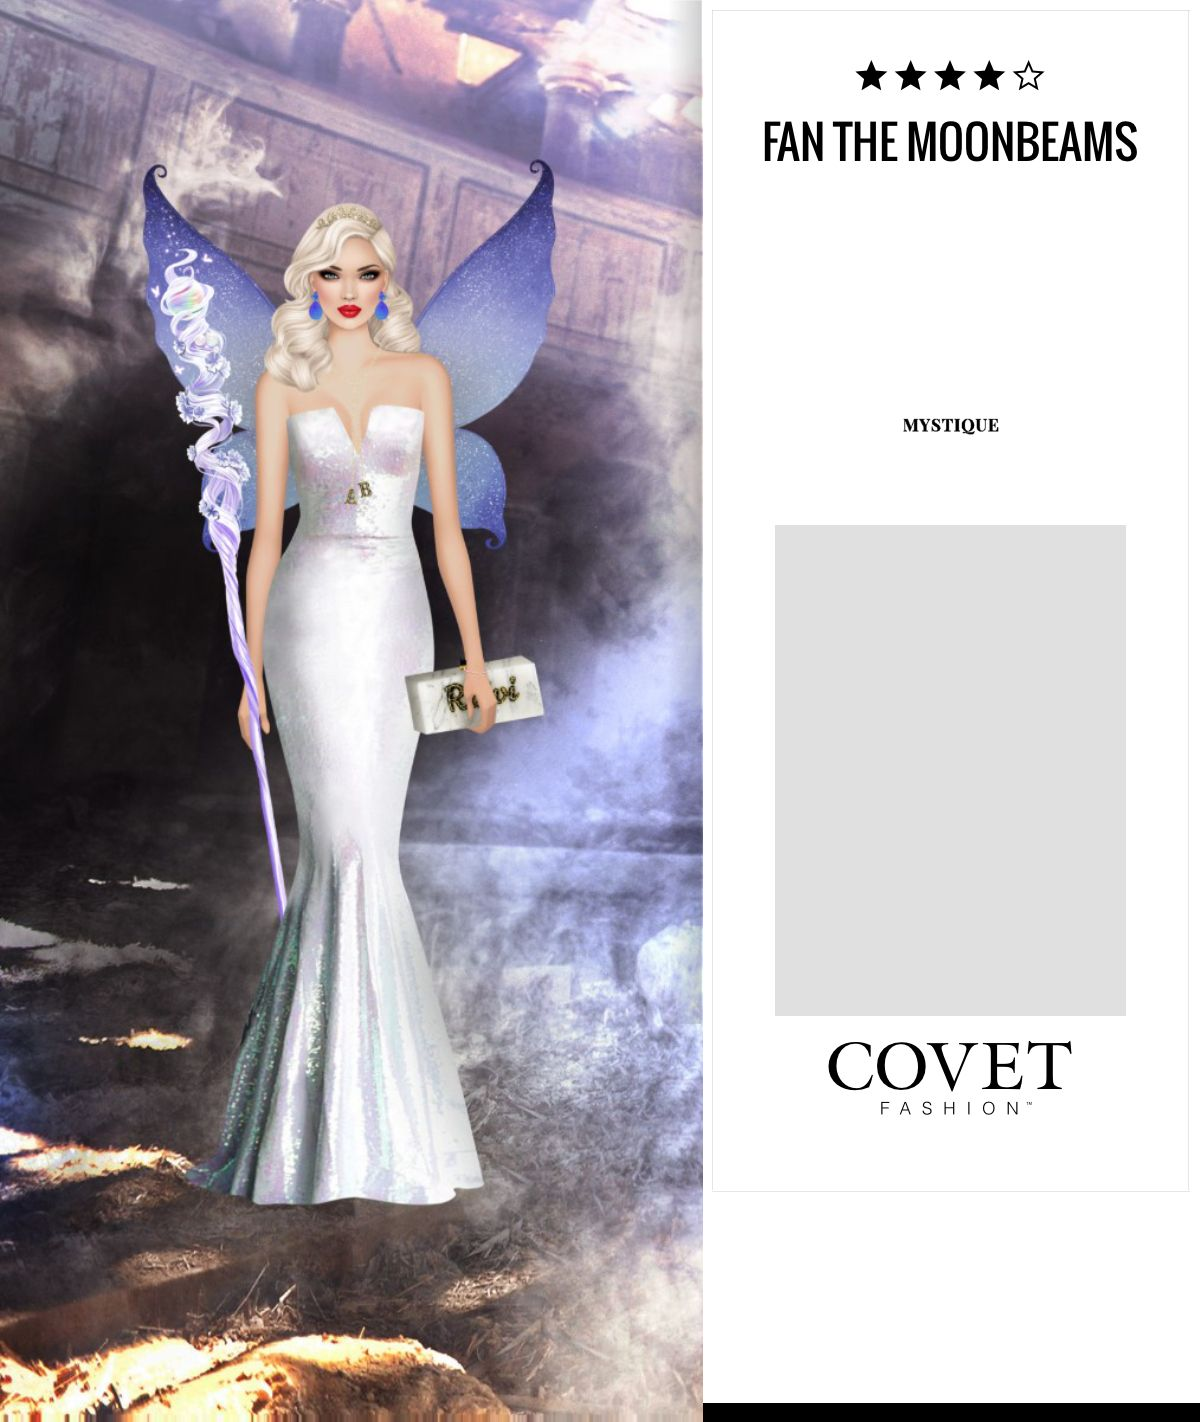 Fan Of Moonbeams Covet Fashion Fashion App Moonbeam